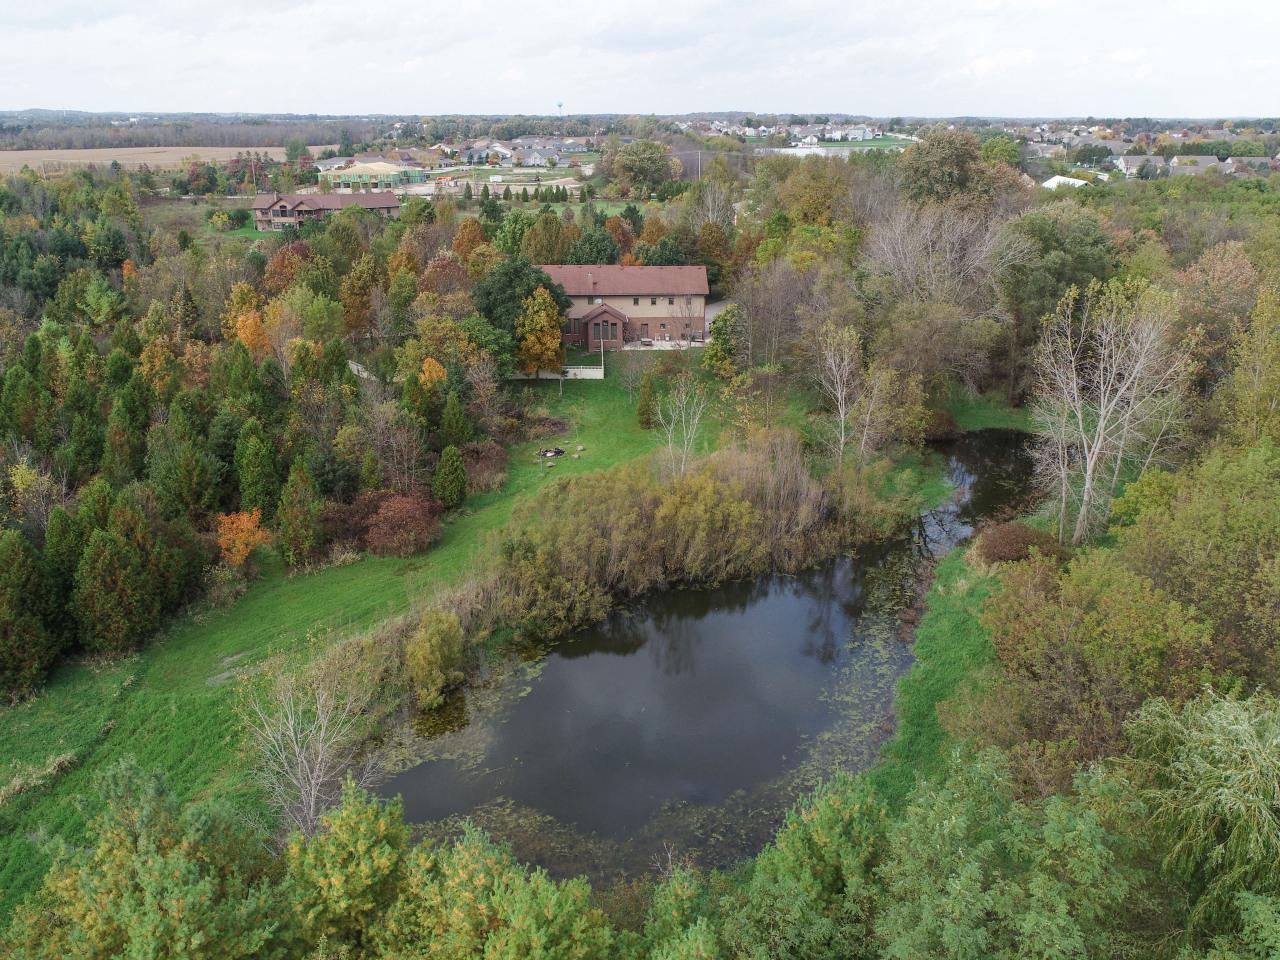 This is your chance to own 24 acres of paradise! Enjoy the abundant wildlife, hiking and hunting. Sip your morning beverage while watching the deer, turkey or the birds in the pond. Take a hike and stop at the creek. Custom built brick home features solid oak flooring, custom mill work, built-ins, Pella windows and much more! Huge bonus room above garage with new flooring. Freight elevator makes moving large items to the second floor a breeze. 30x50 and 25x30 pole buildings for plenty of extra storage. Recent updates include granite counter tops in kitchen, air conditioner, furnace, refinished hardwood floors on main, whole home generator, air exchanger, Weather Tight front door. HSA home warranty provided. Kubota Tracker and John Deere Gator are negotiable.